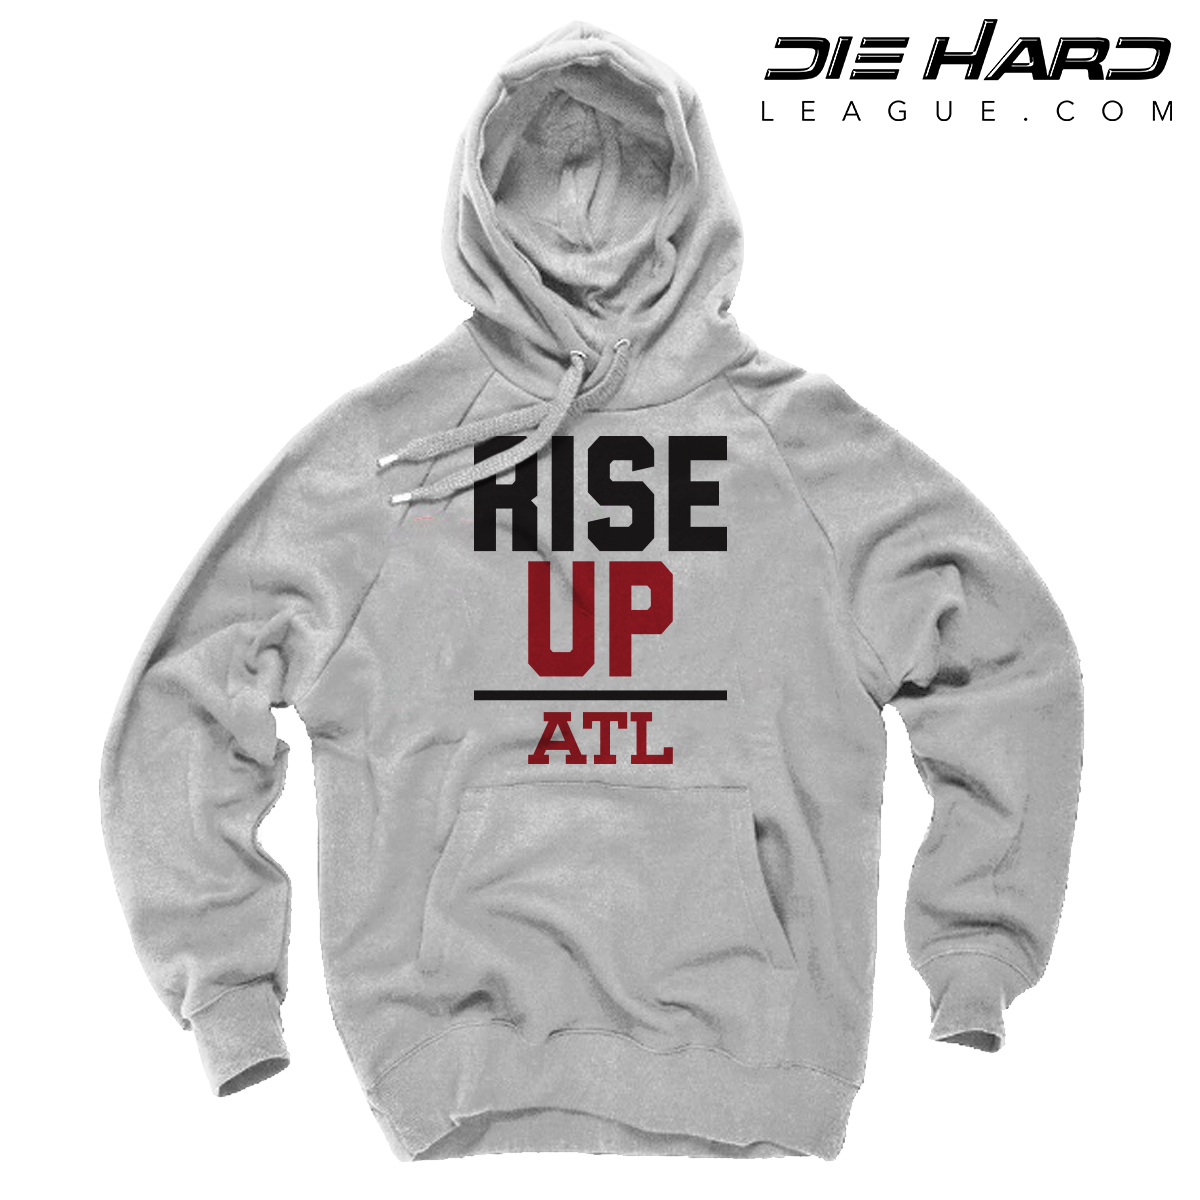 cheap for discount f9907 62882 Atlanta Falcons Sweater - Rise Up White Hoodie